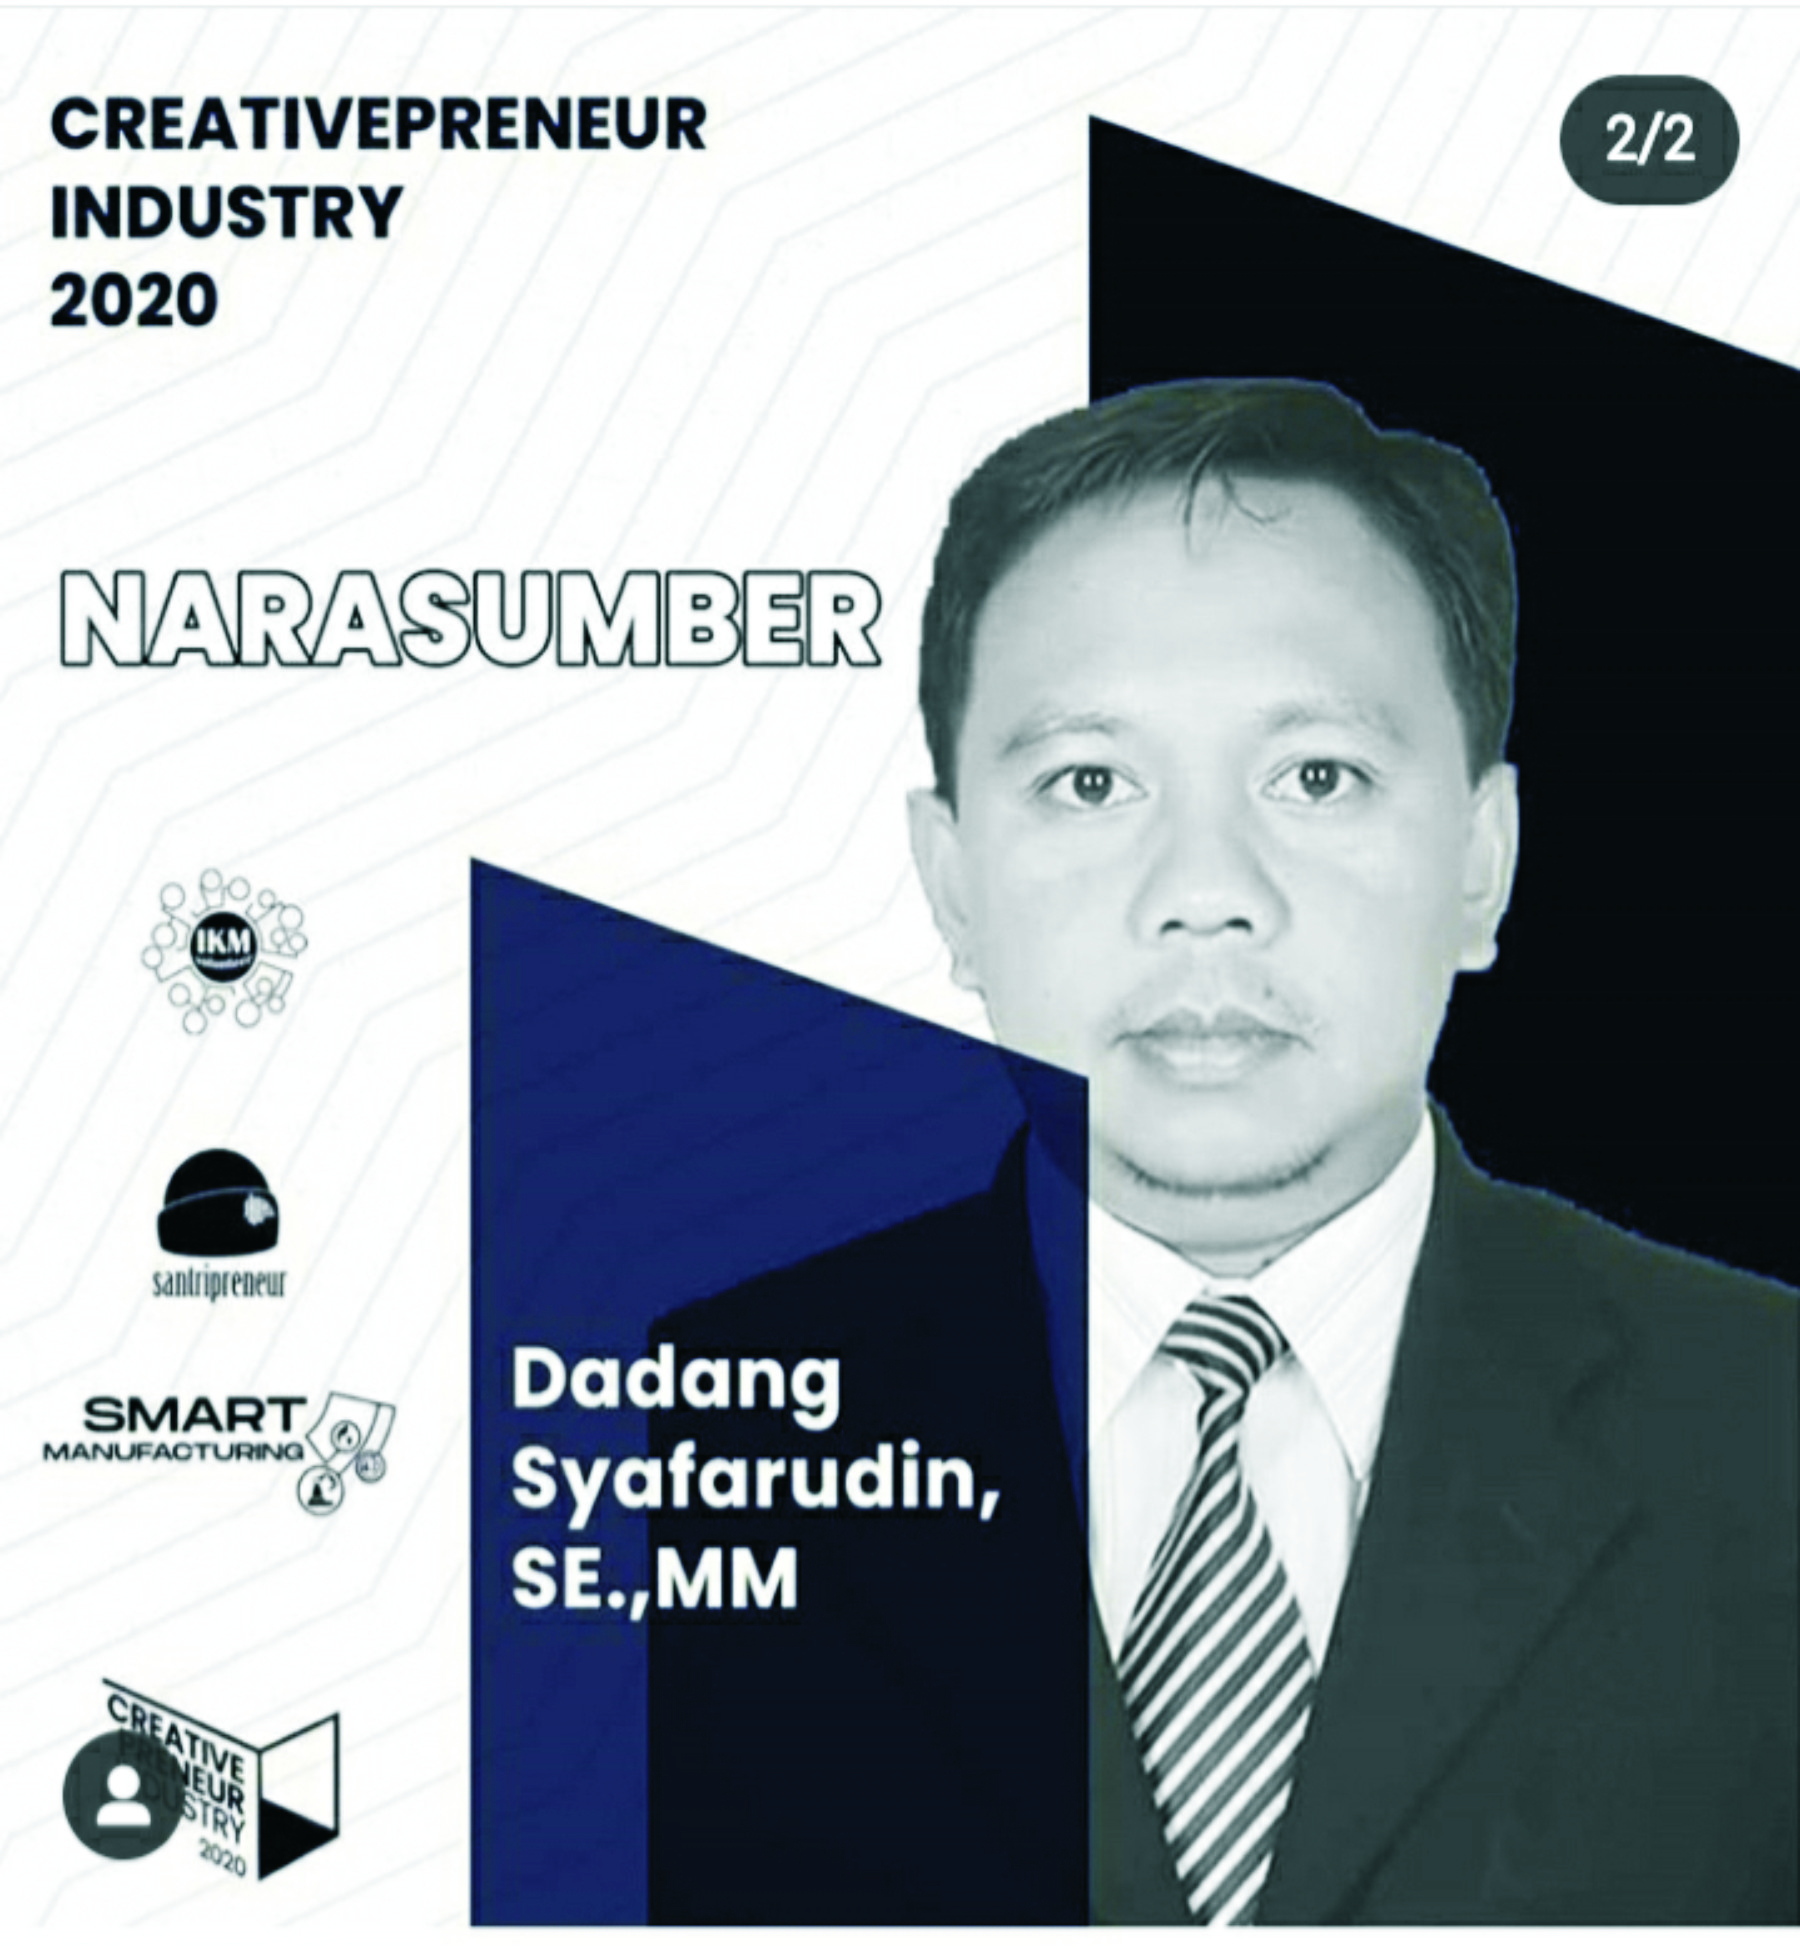 VreativePreneur Industry 2020